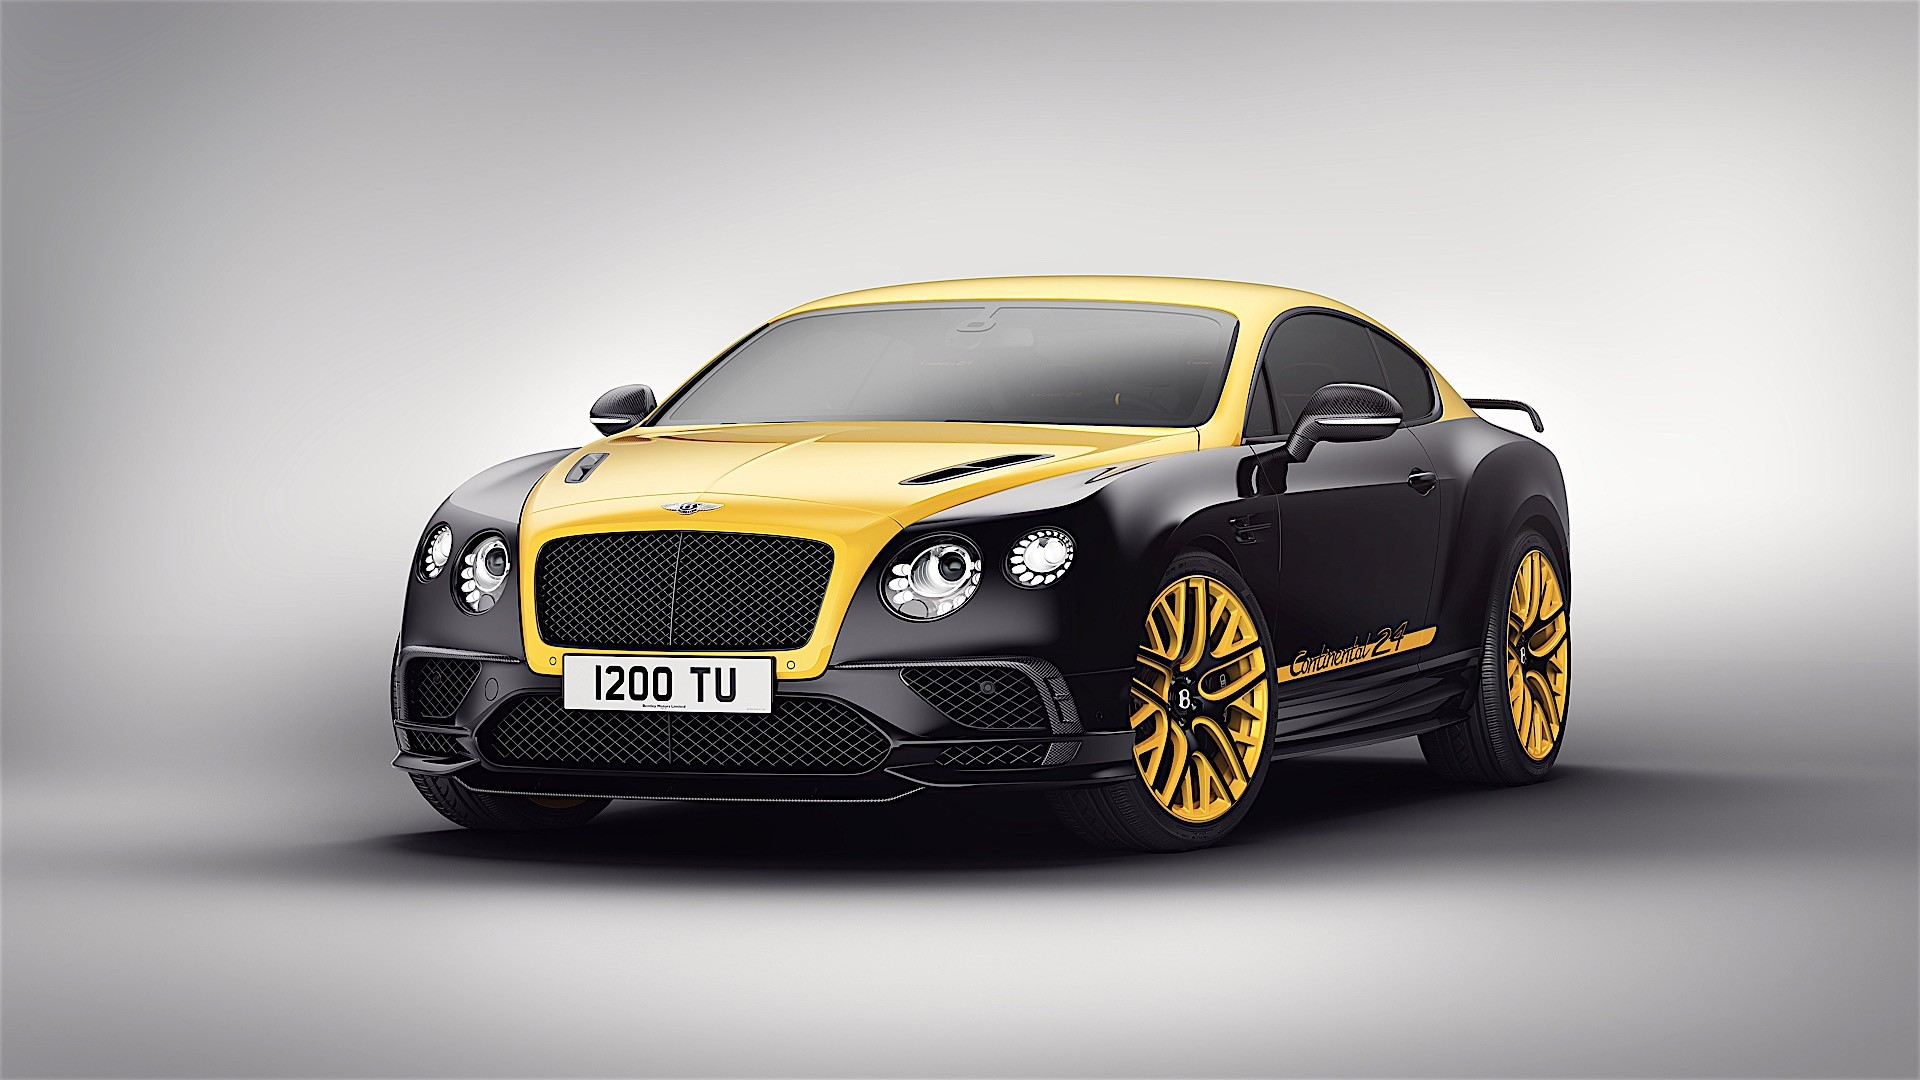 24 Hour Junk Cars >> Bentley Continental 24 Unveiled, It Is a Limited Edition ...